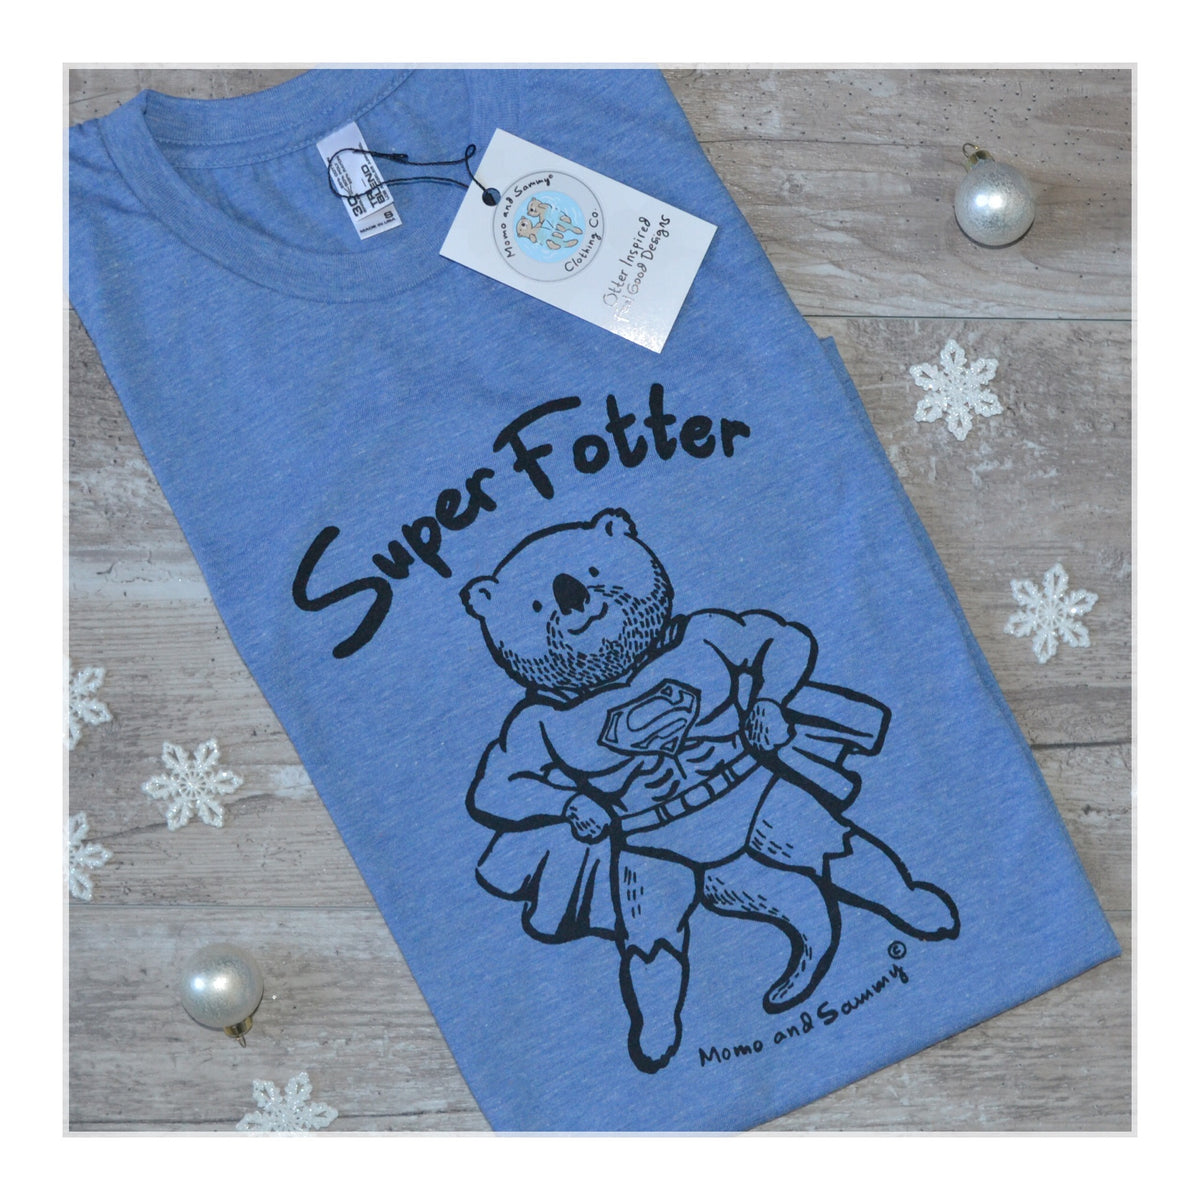 Super Father - men's adult tee | Momo and Sammy Clothing Co.